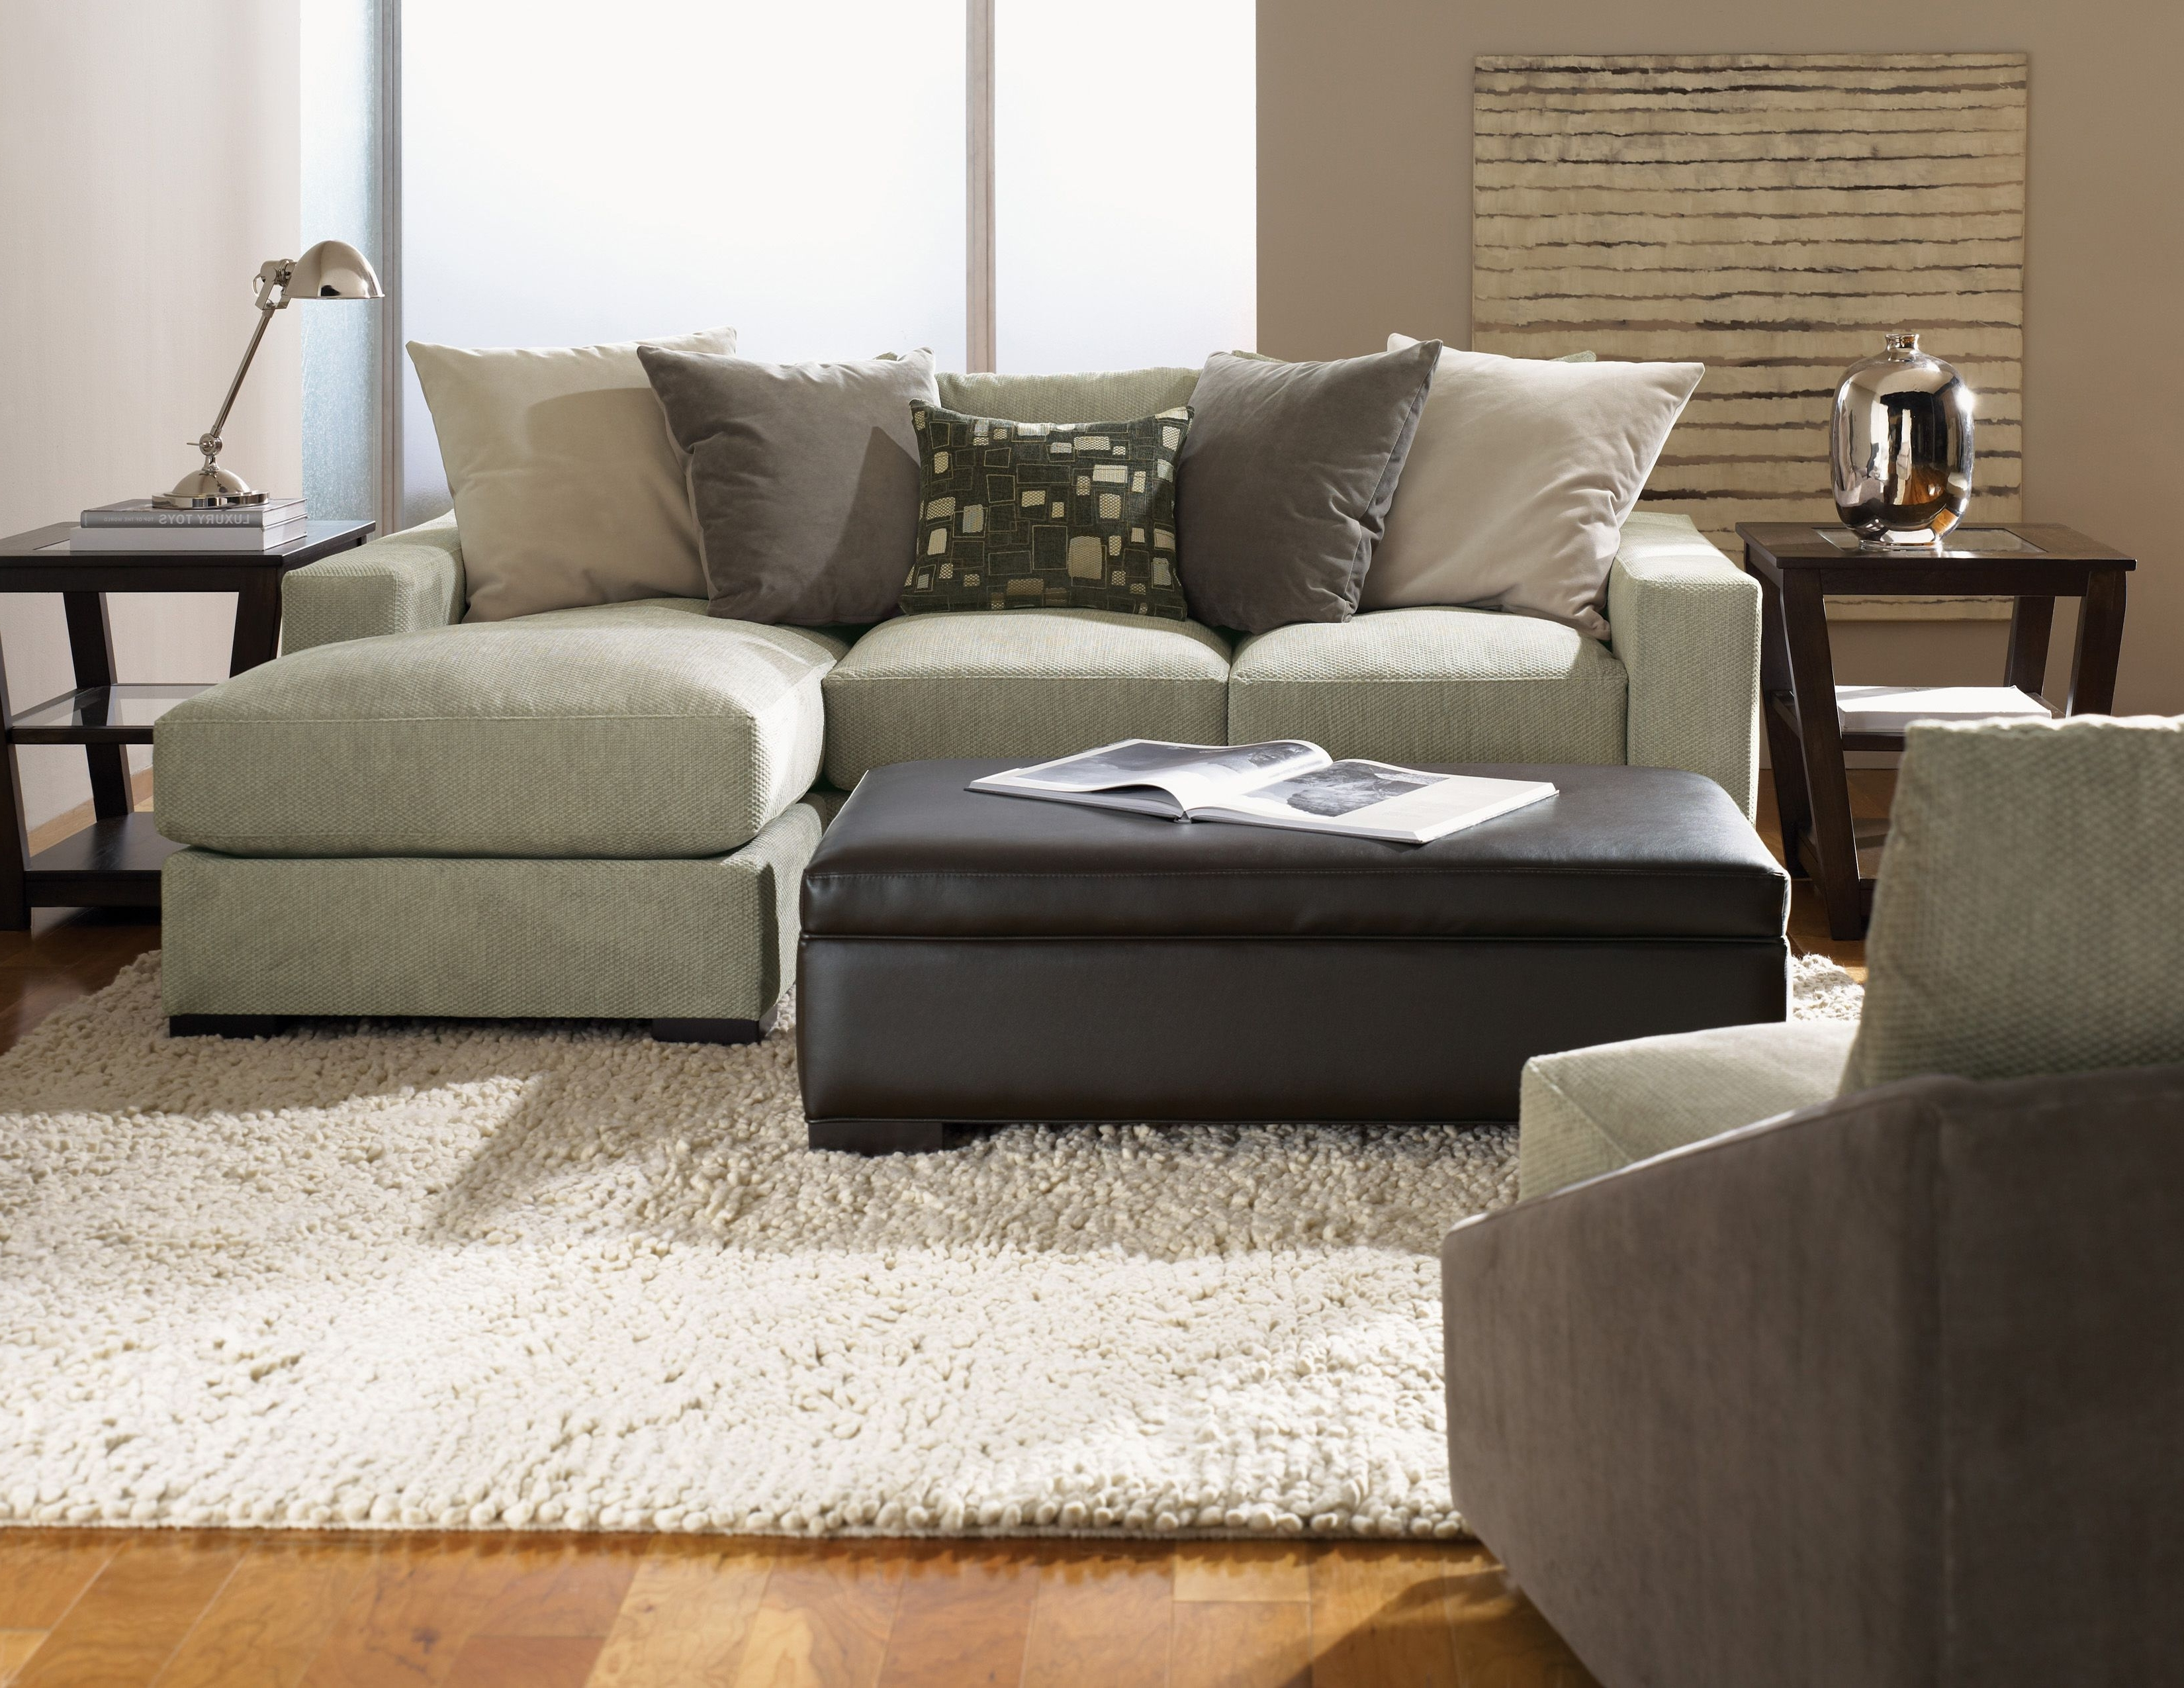 Apartment Sectional Sofas With Chaise Throughout Current Jonathan Louis Lombardy Sofa/chaise (View 5 of 15)